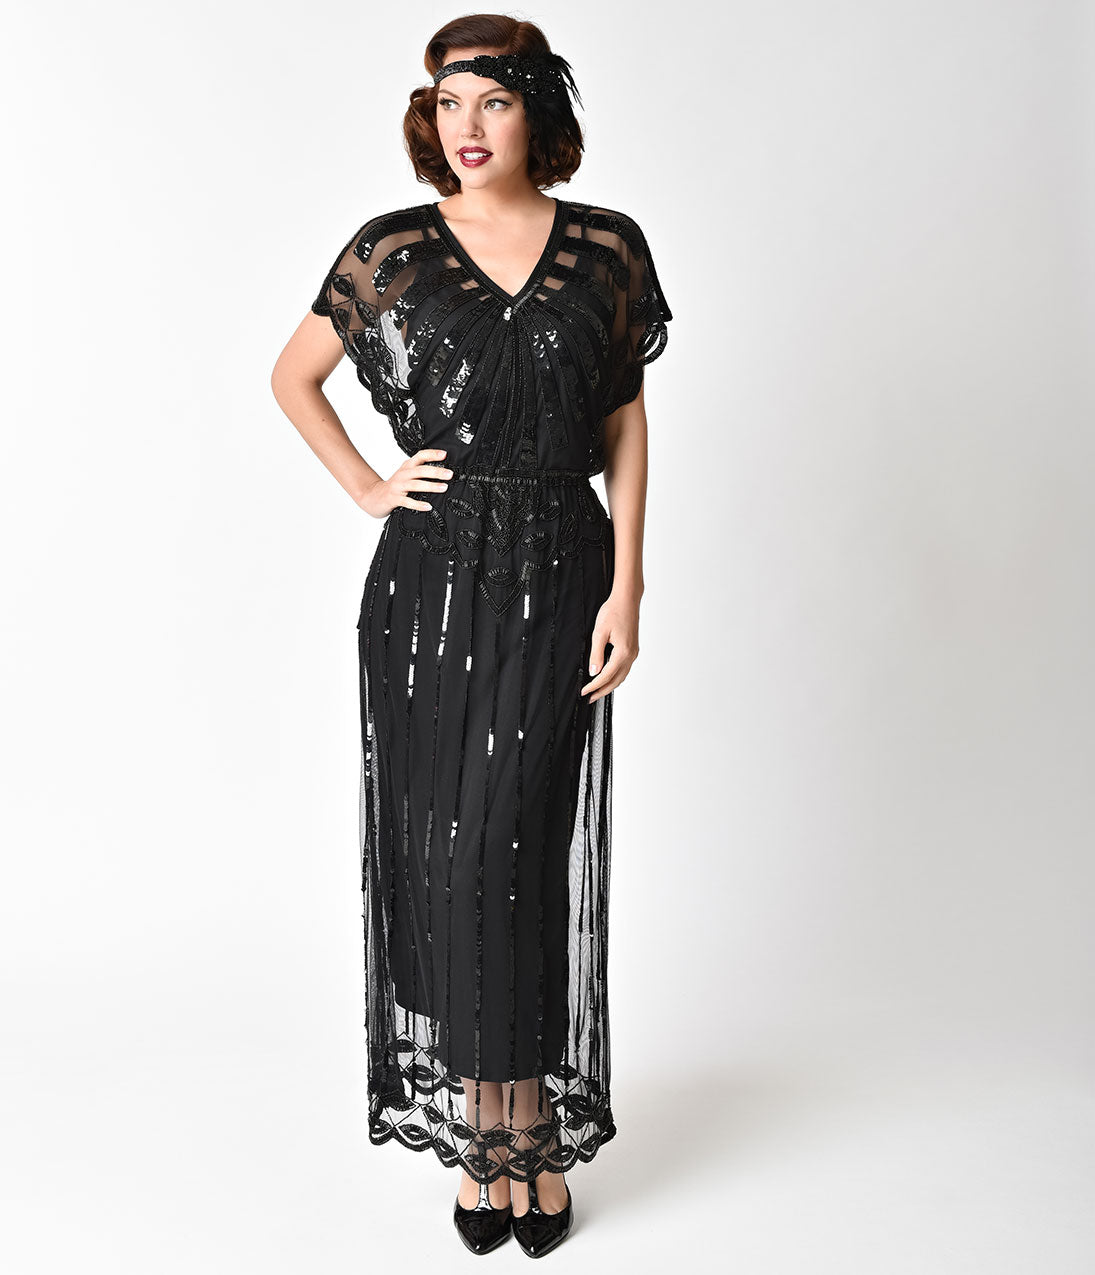 Black Formal Evening Gowns with Sleeves